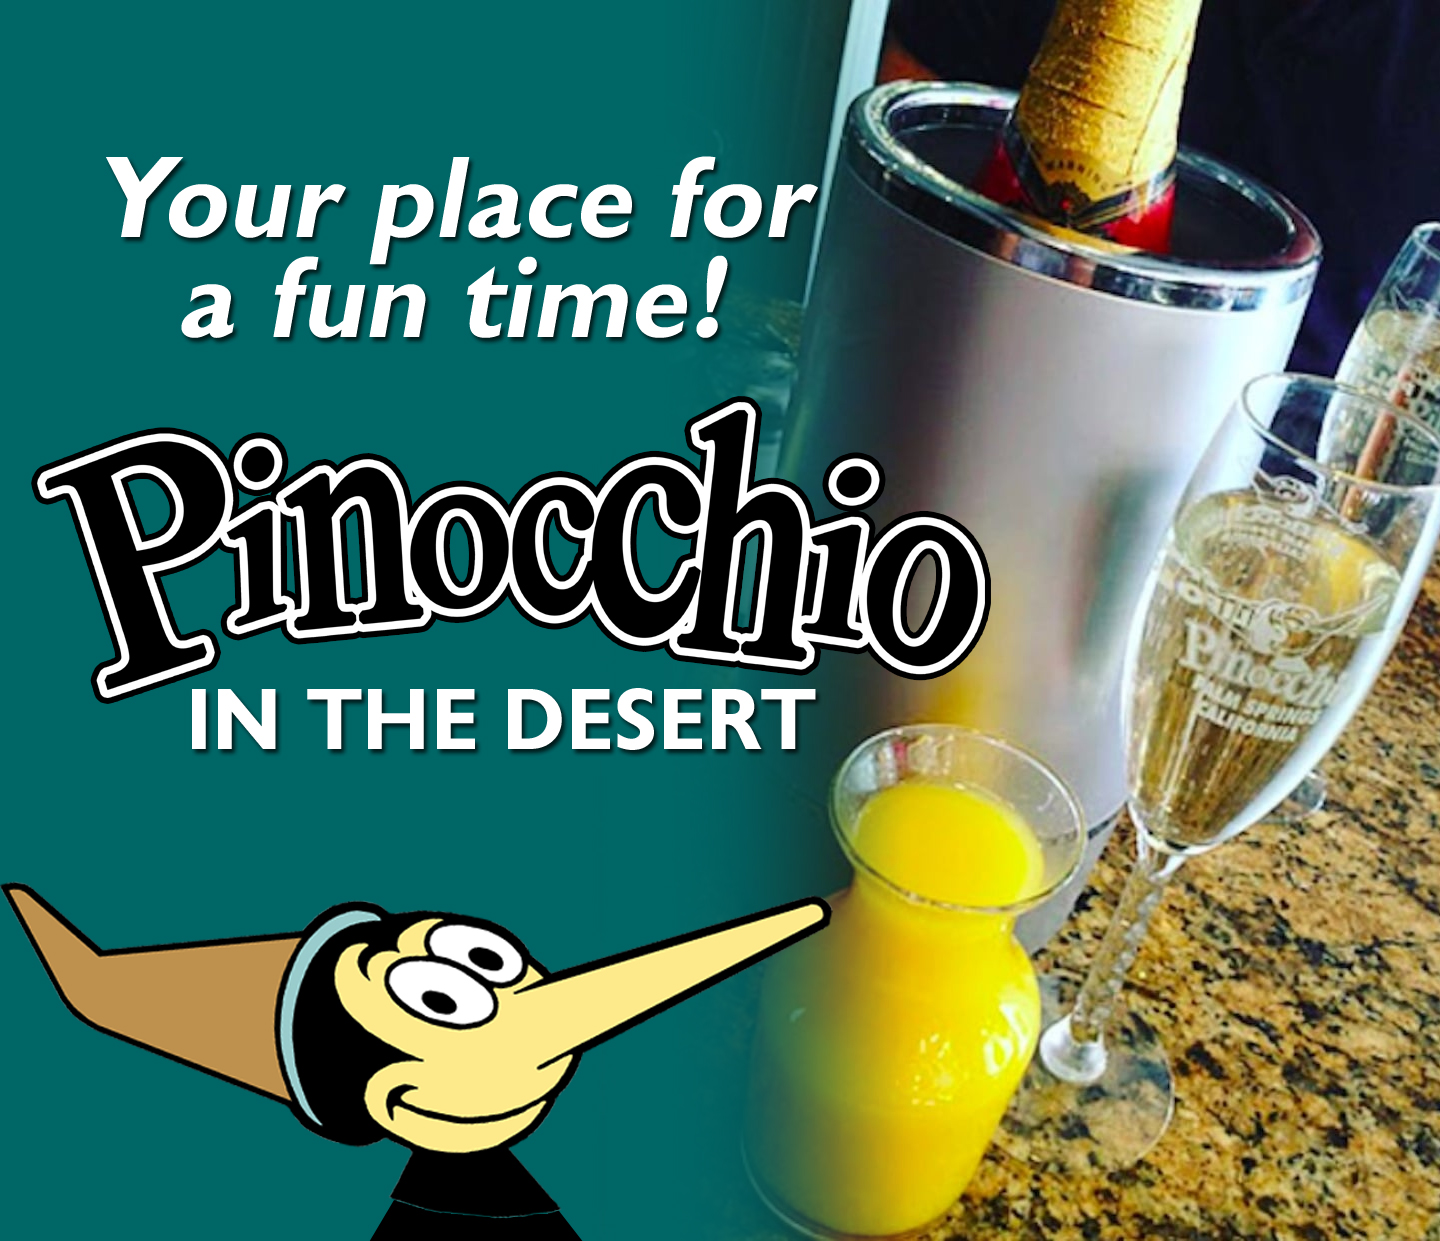 Your Place for a FUN Time! Pinocchios in the Desert